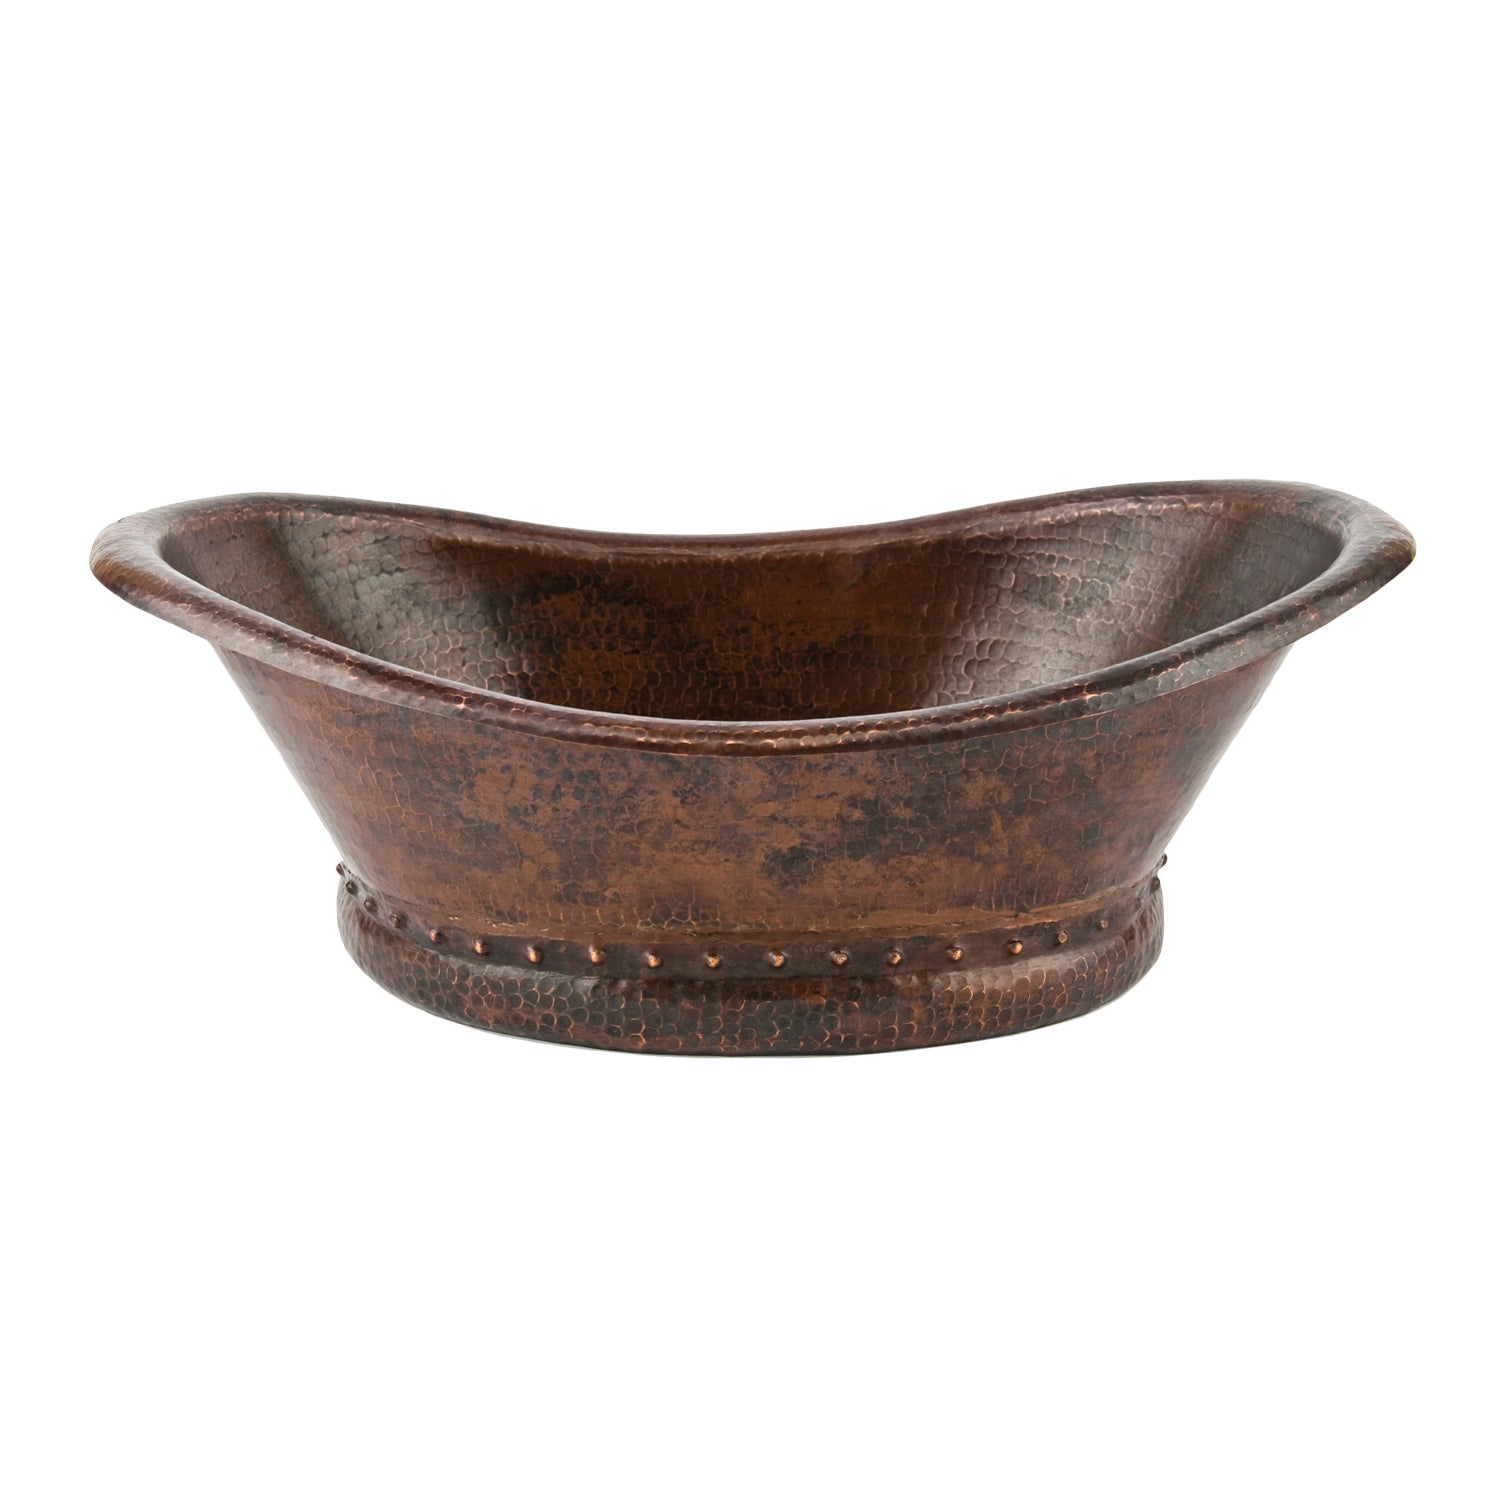 Bath Tub Vessel Hammered Copper Sink